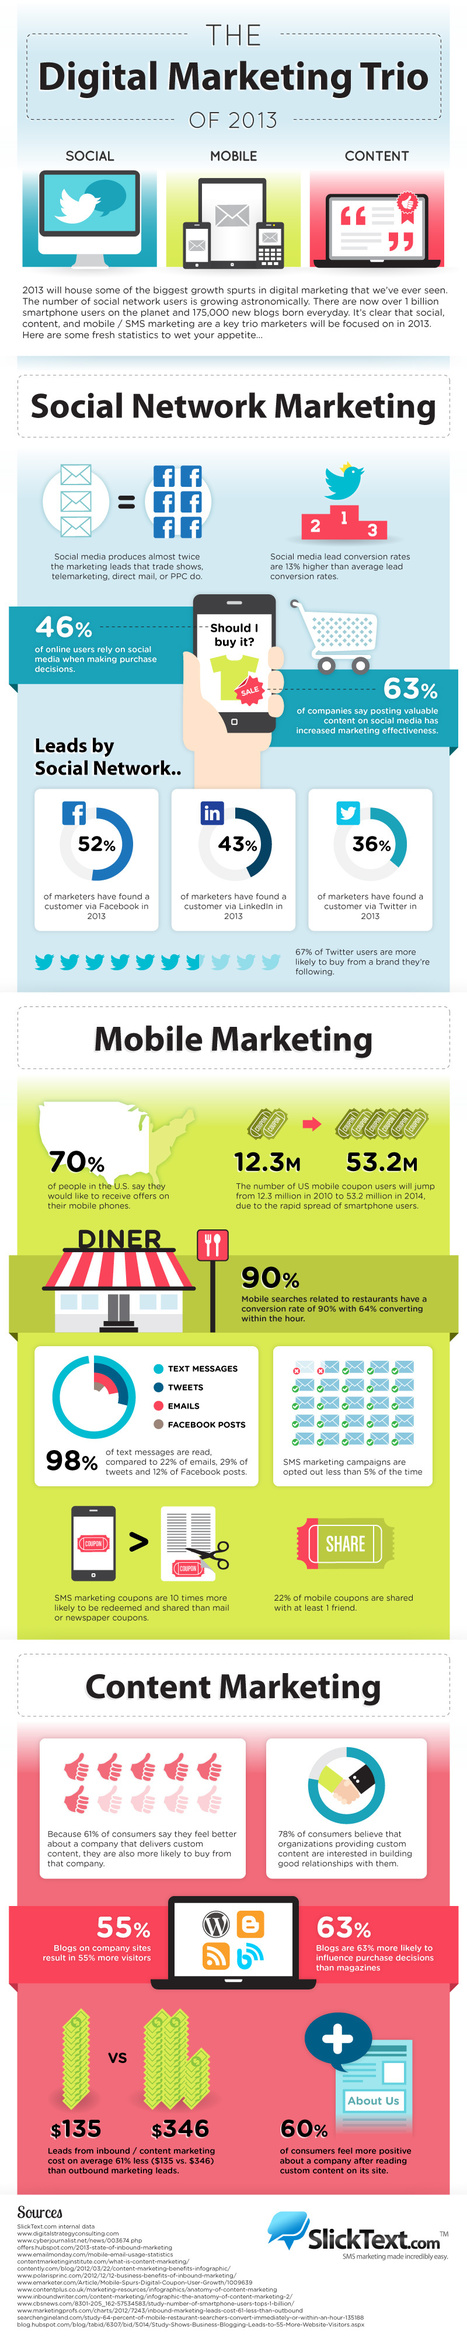 The Digital Marketing Trio Of 2013 [Infographic] | Whitepaper distribution and syndication | Scoop.it